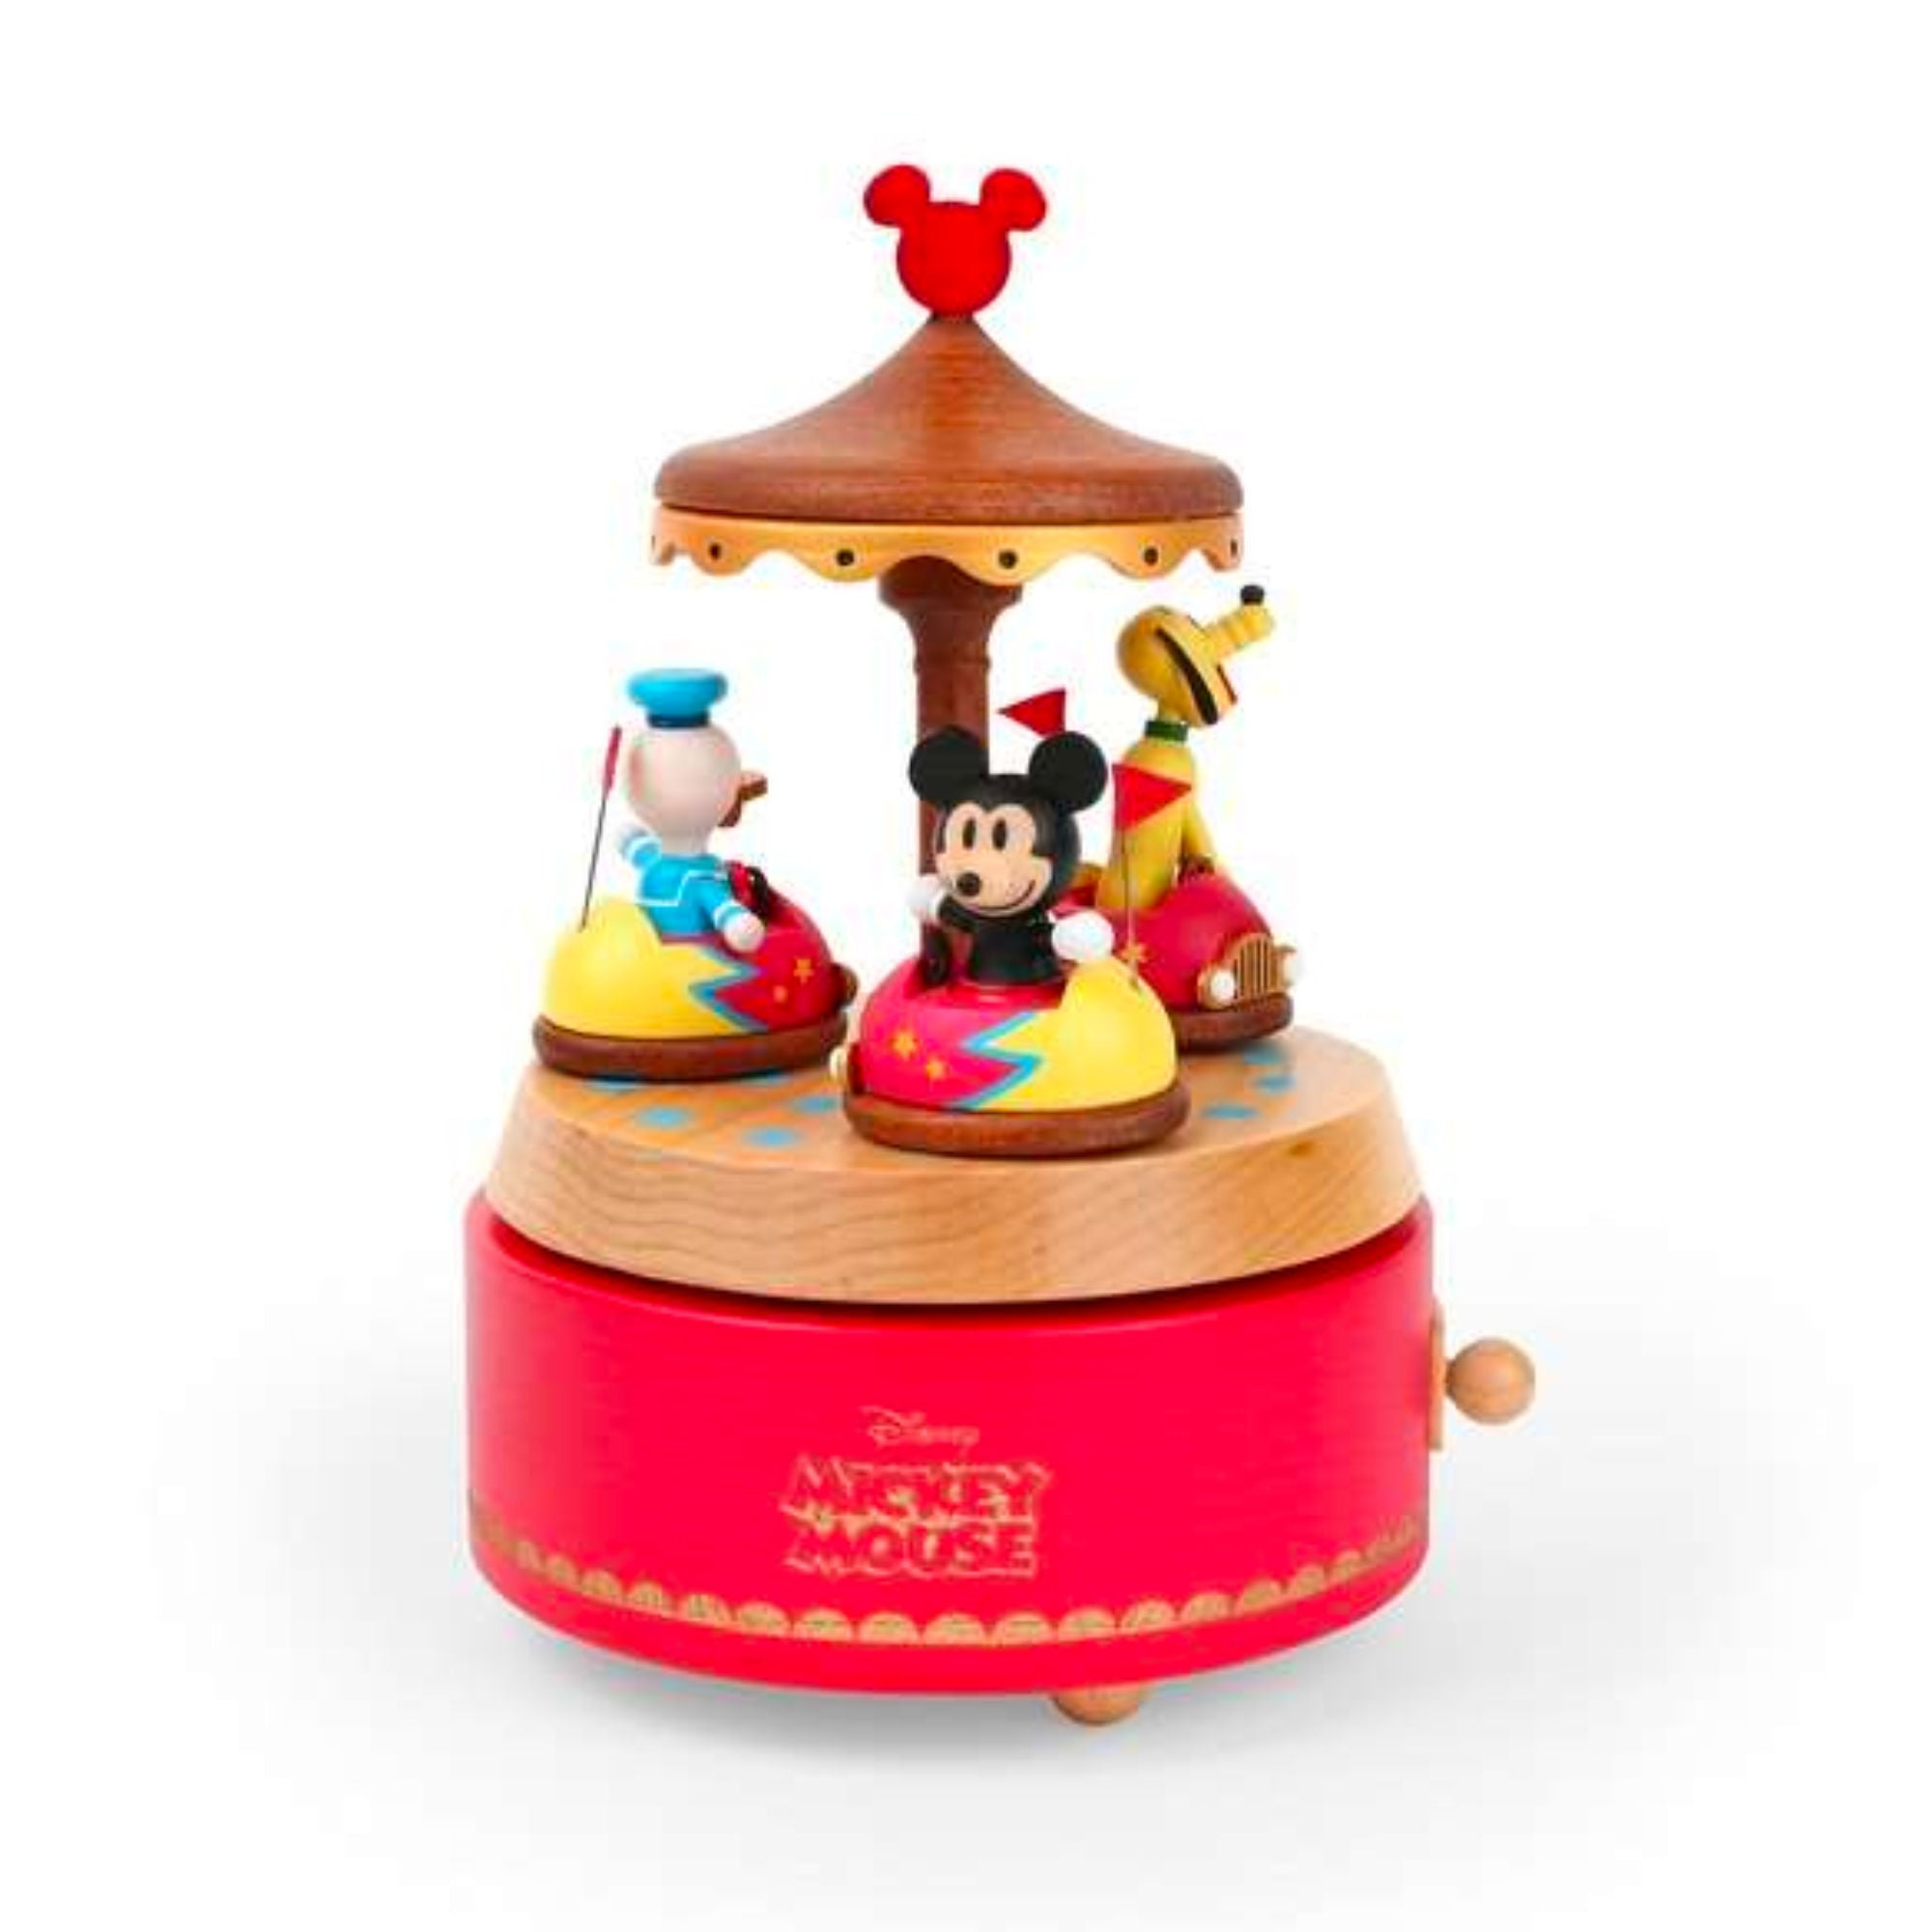 Wooderful Life wooden music box, Mickey bumper cars